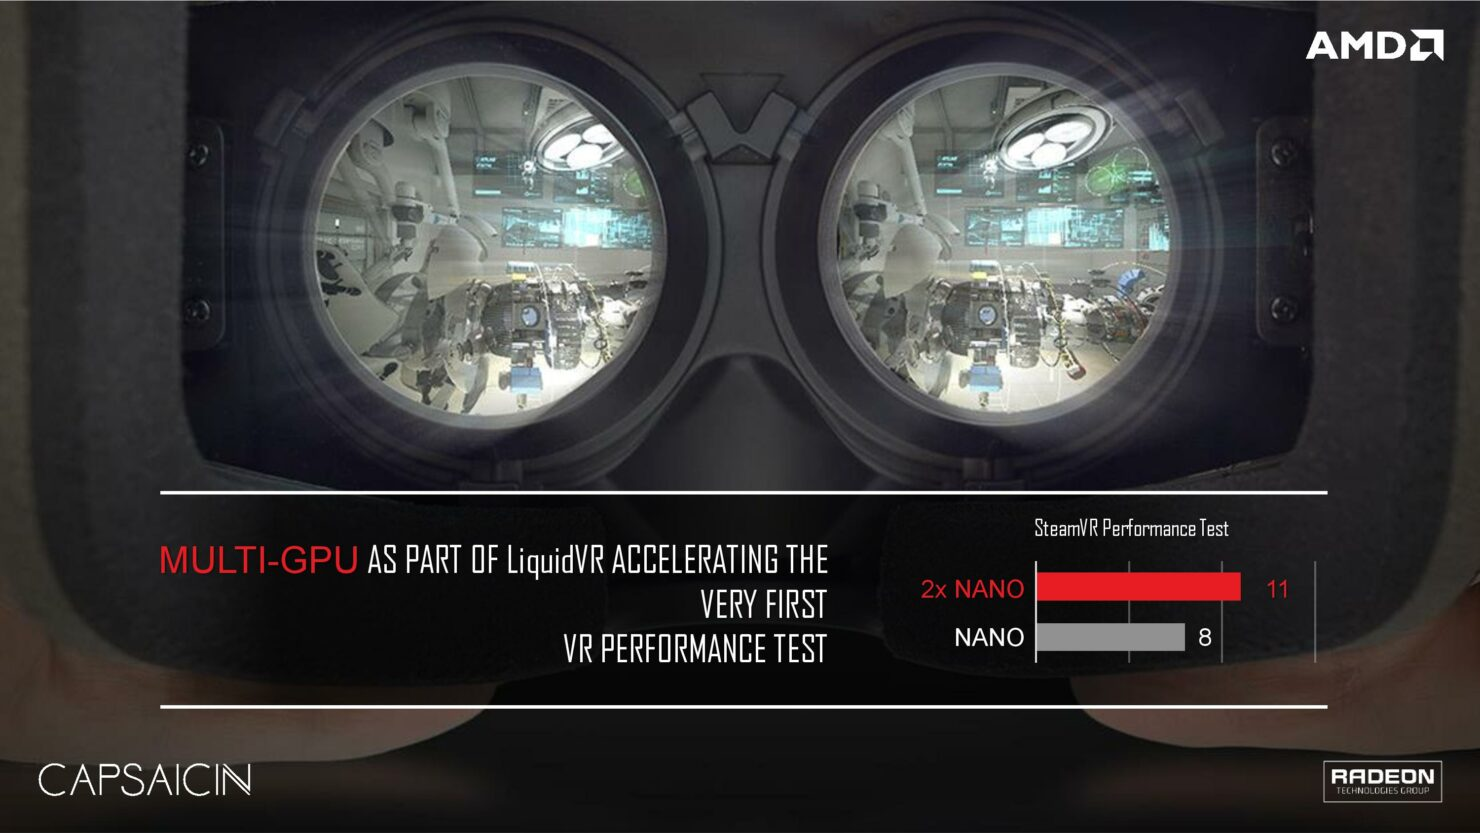 capsaicin-presented-by-amd-radeon_final-page-049